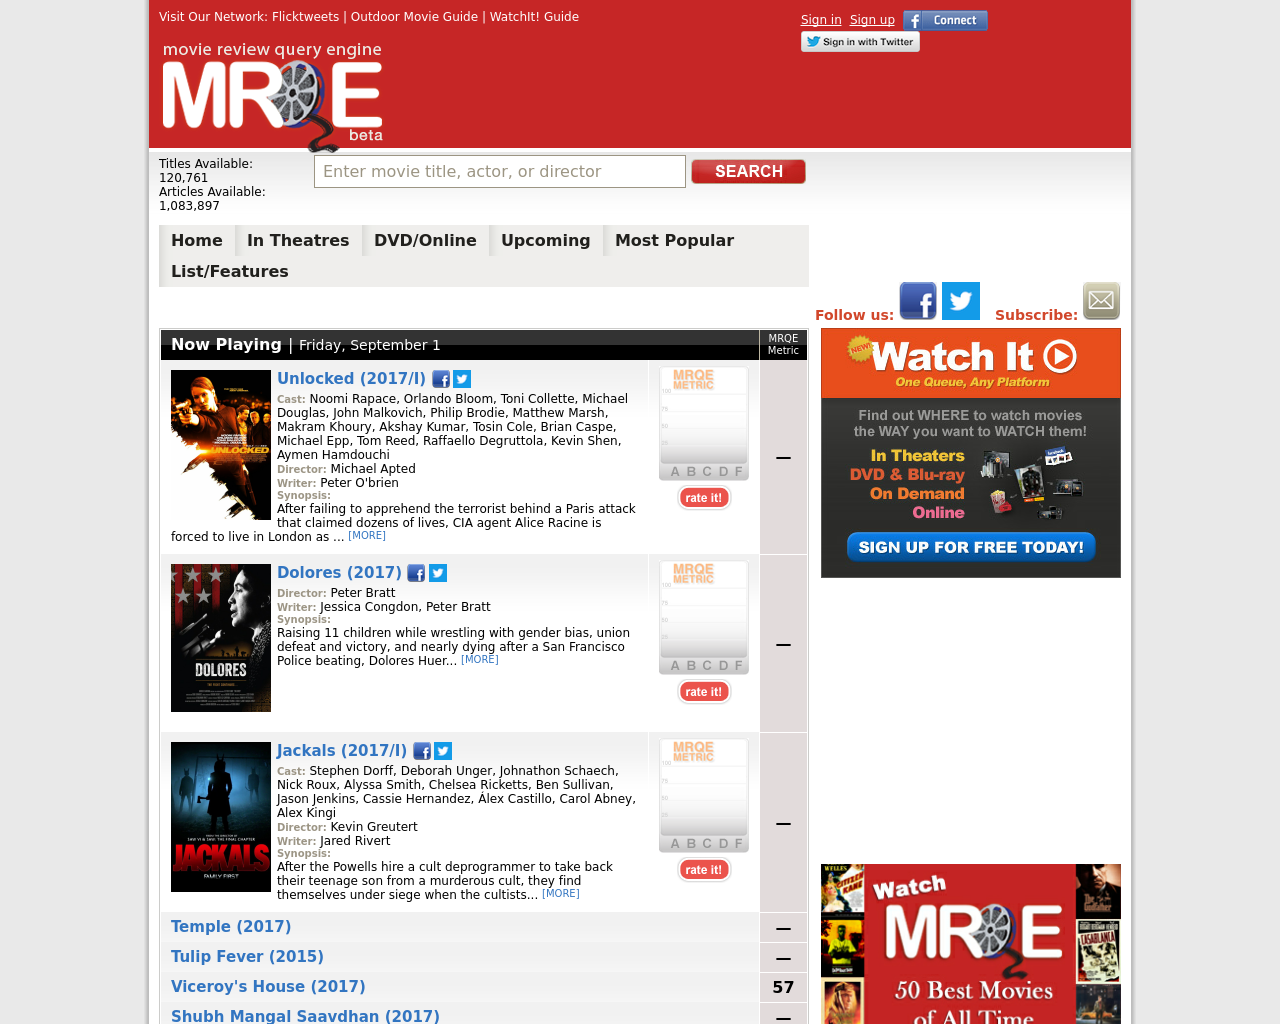 Movie-Review-Query-Engine-Advertising-Reviews-Pricing